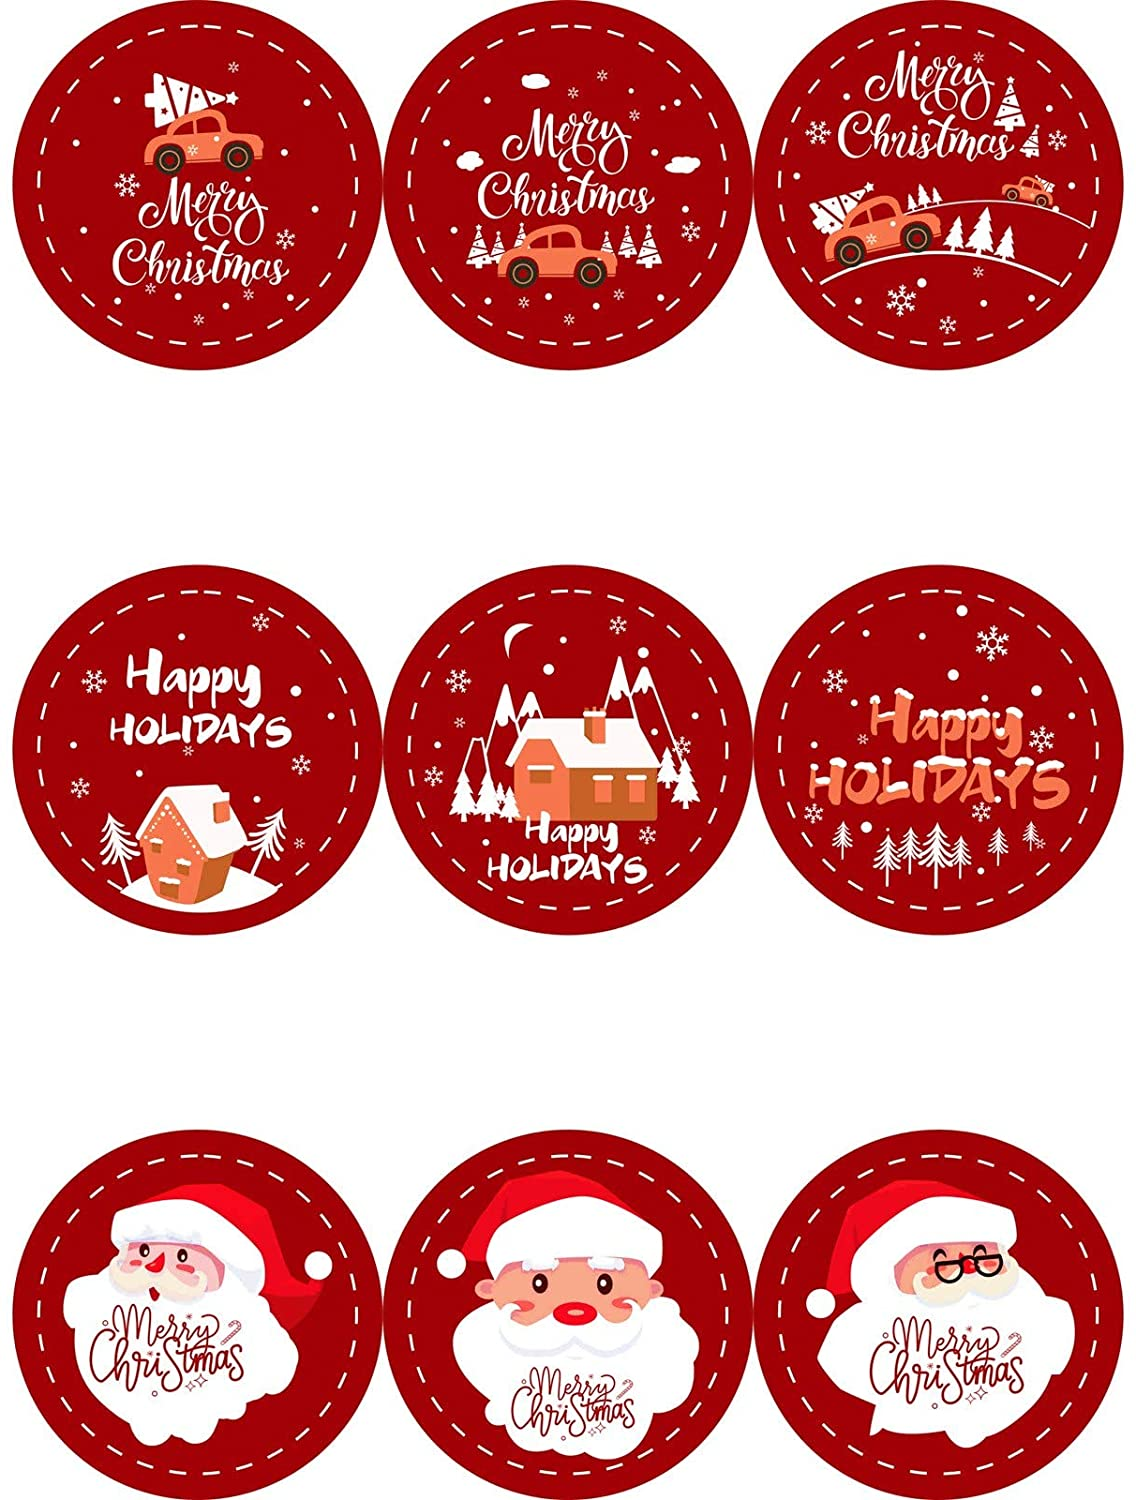 Simayixx Christmas Sticker Labels,(32/36 Count) Self Adhesive Gift Stickers Name Decals for Presents/Wrapping Paper Decorations